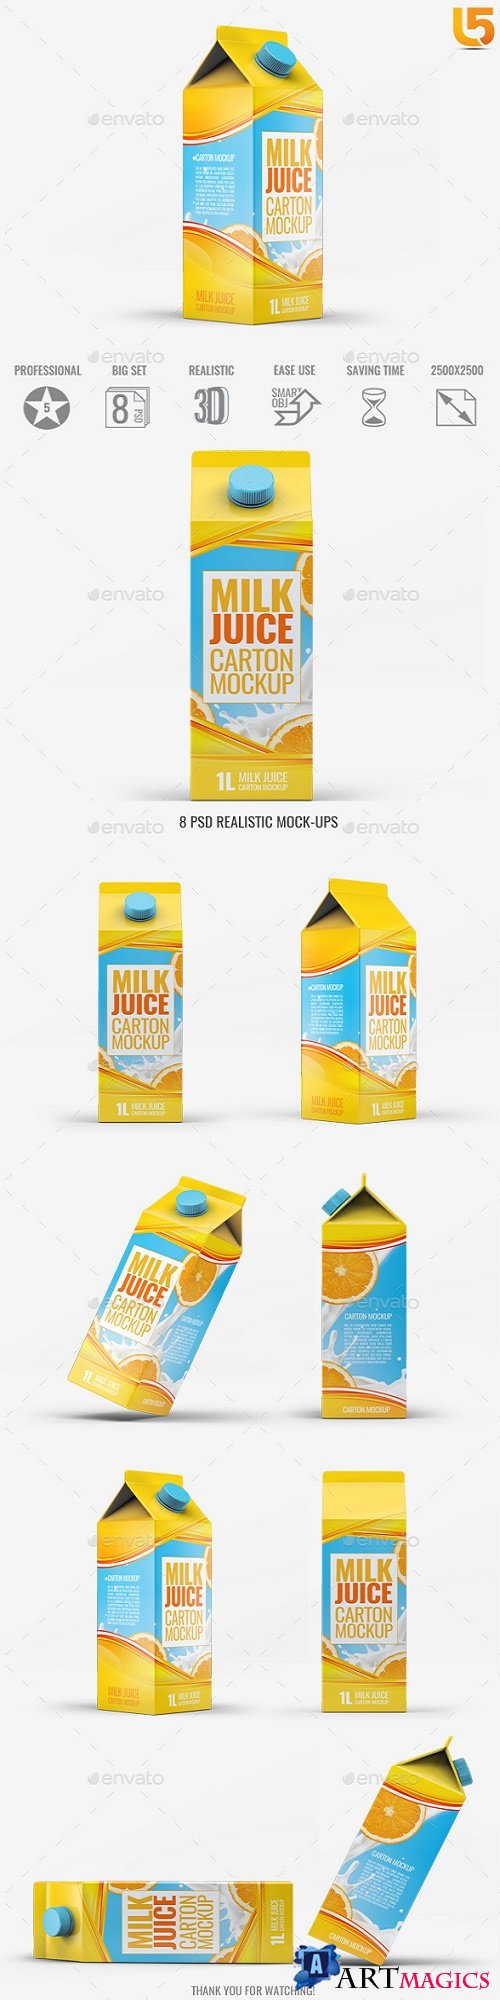 Milk or Juice Carton Mock-Up v3 - 21791427